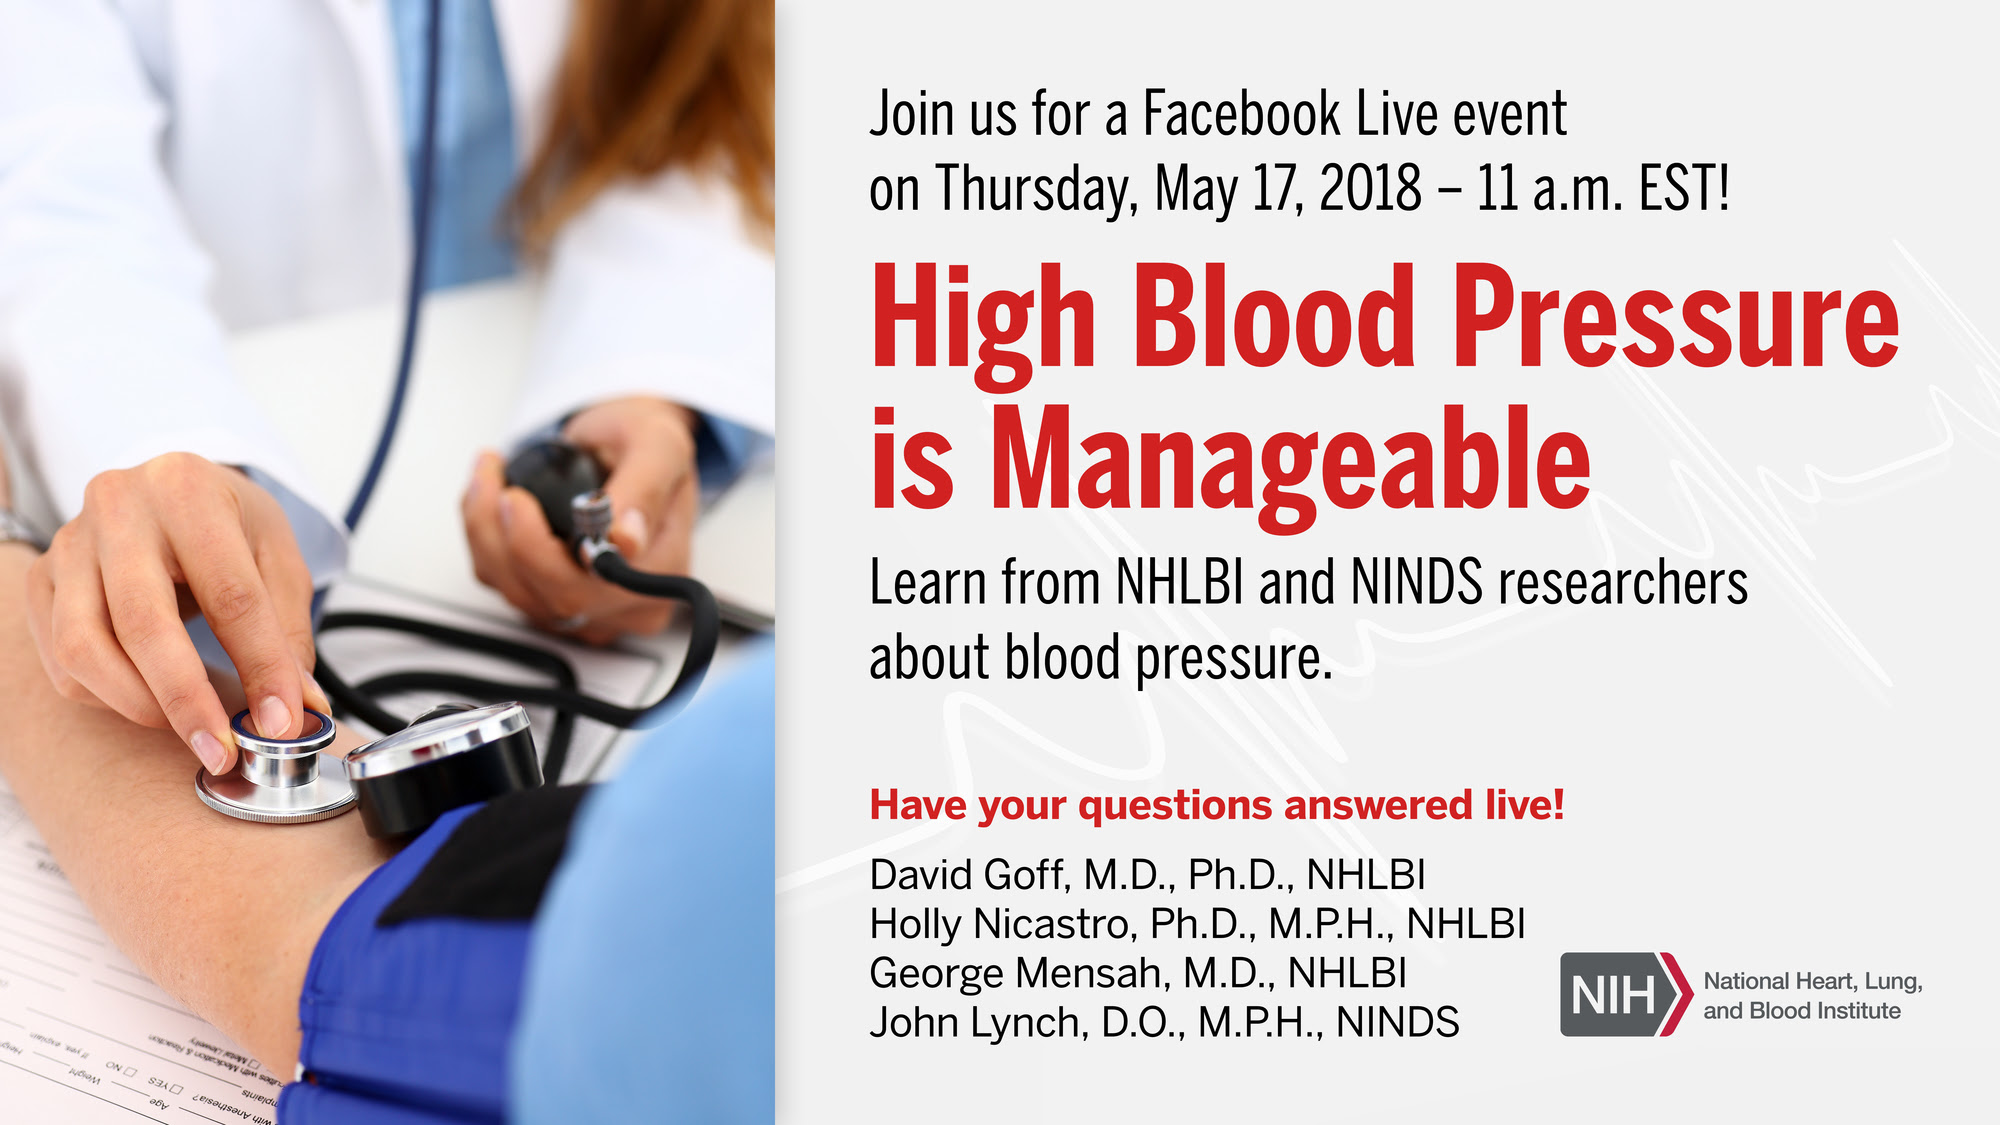 NHLBI World Hypertension Day Facebook Live